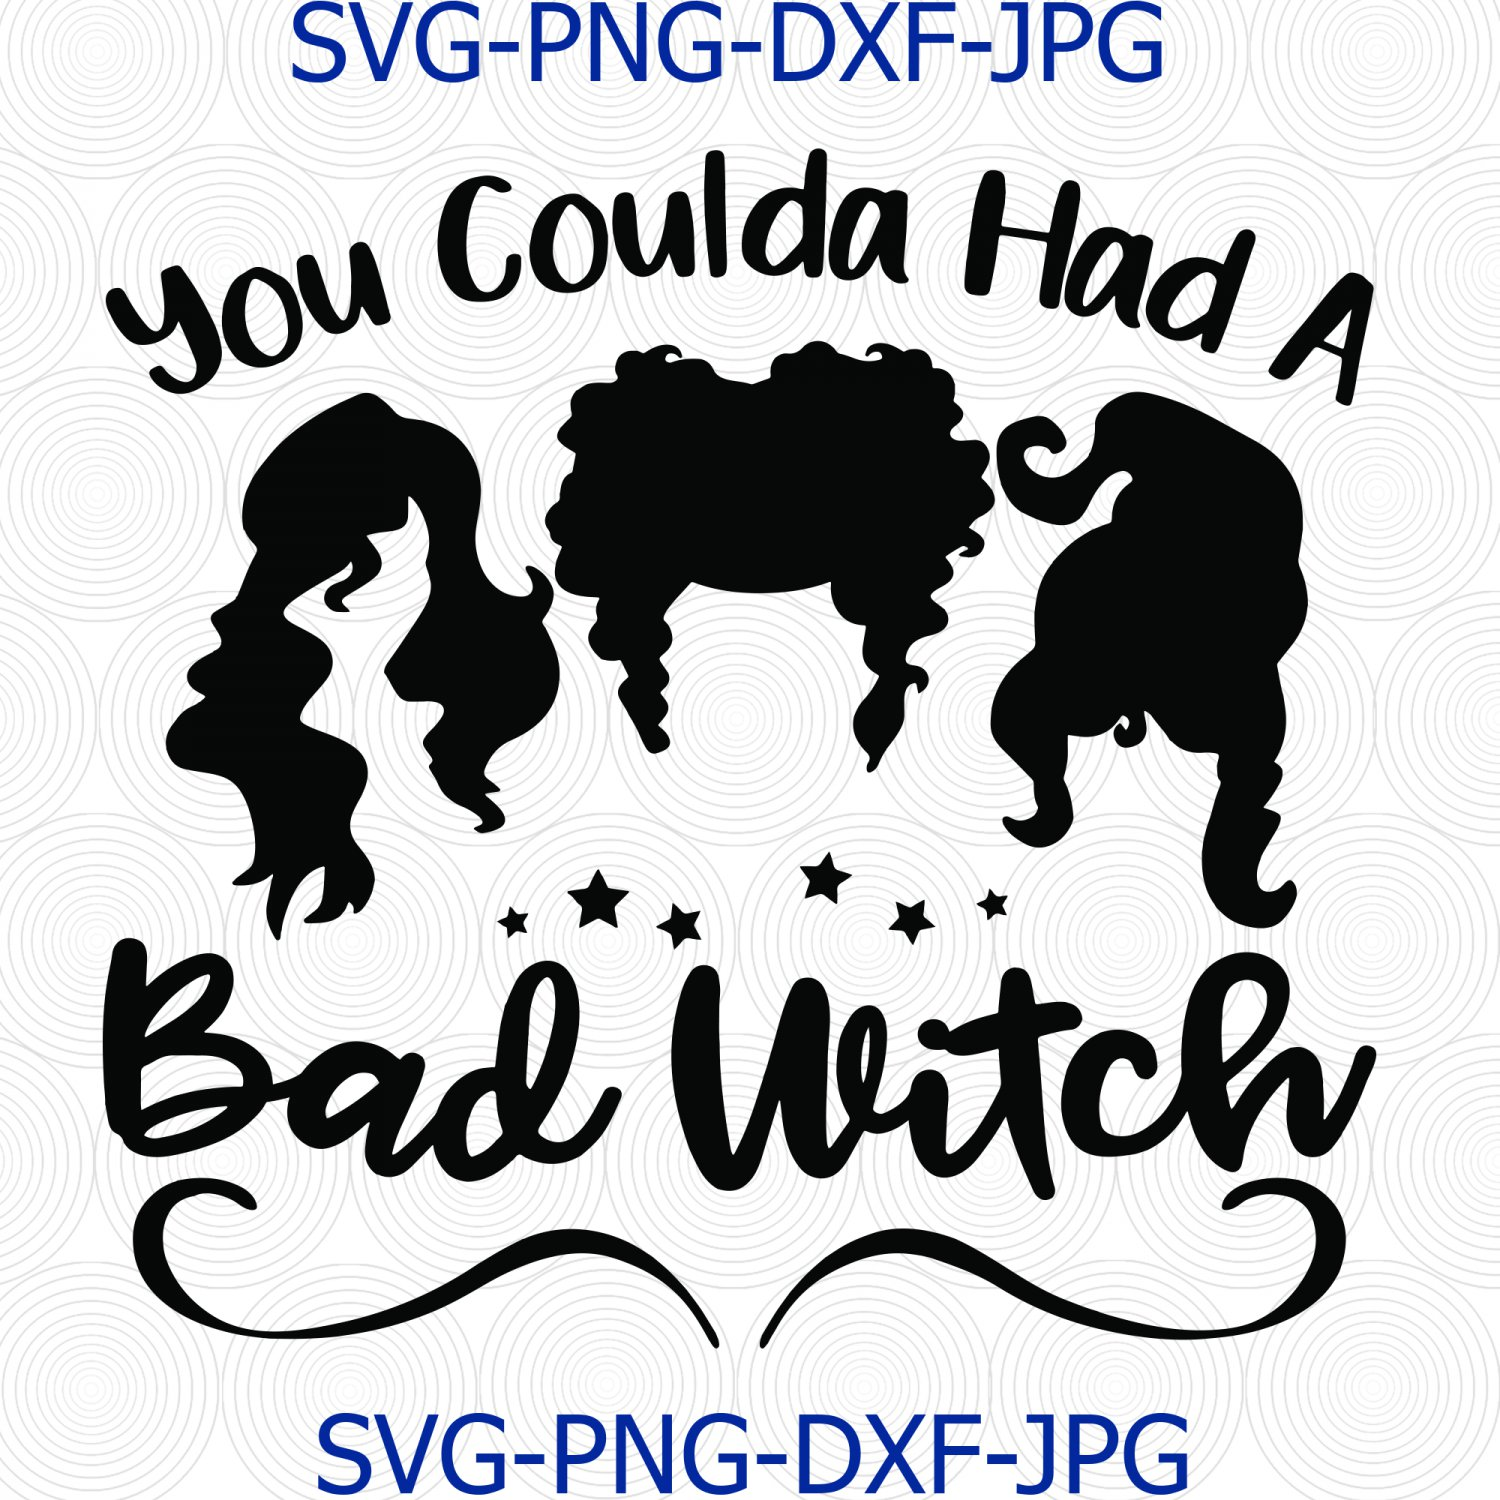 You Coulda Had a Bad Witch Sanderson Sisters Hocus Pocus Funny Halloween SVG